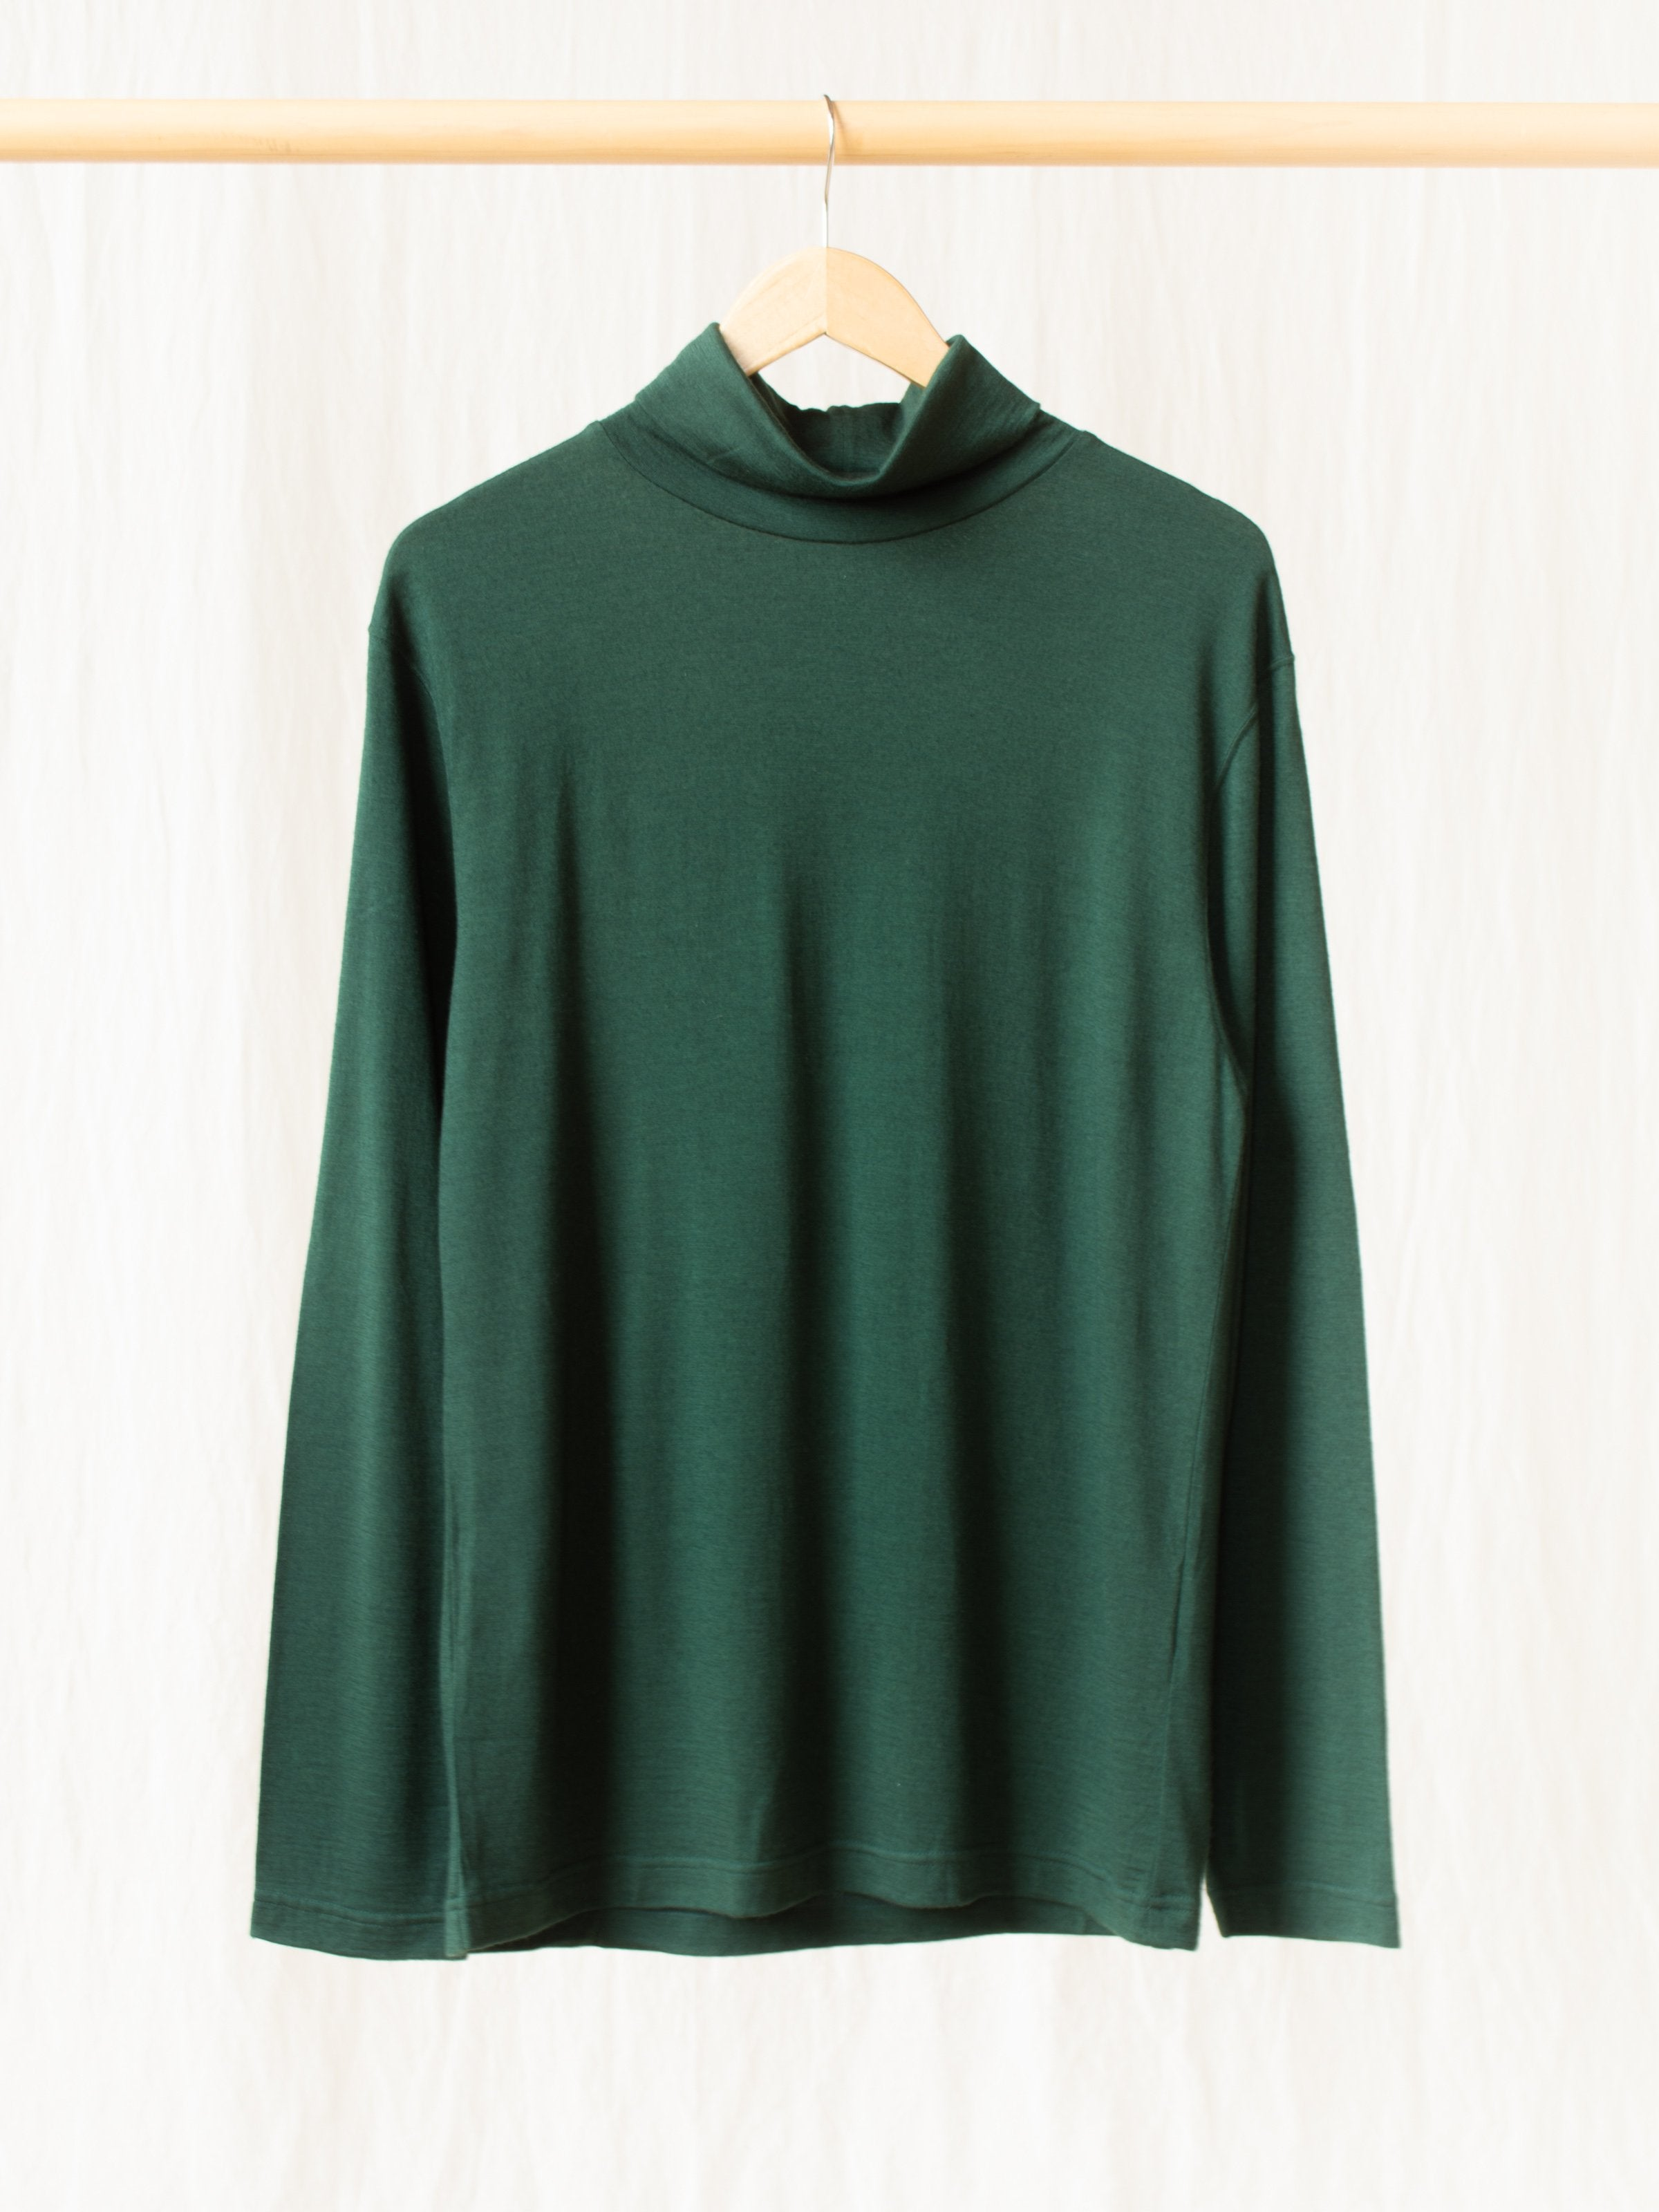 Namu Shop - ts(s) Washable High Gauge Wool Turtleneck - Green